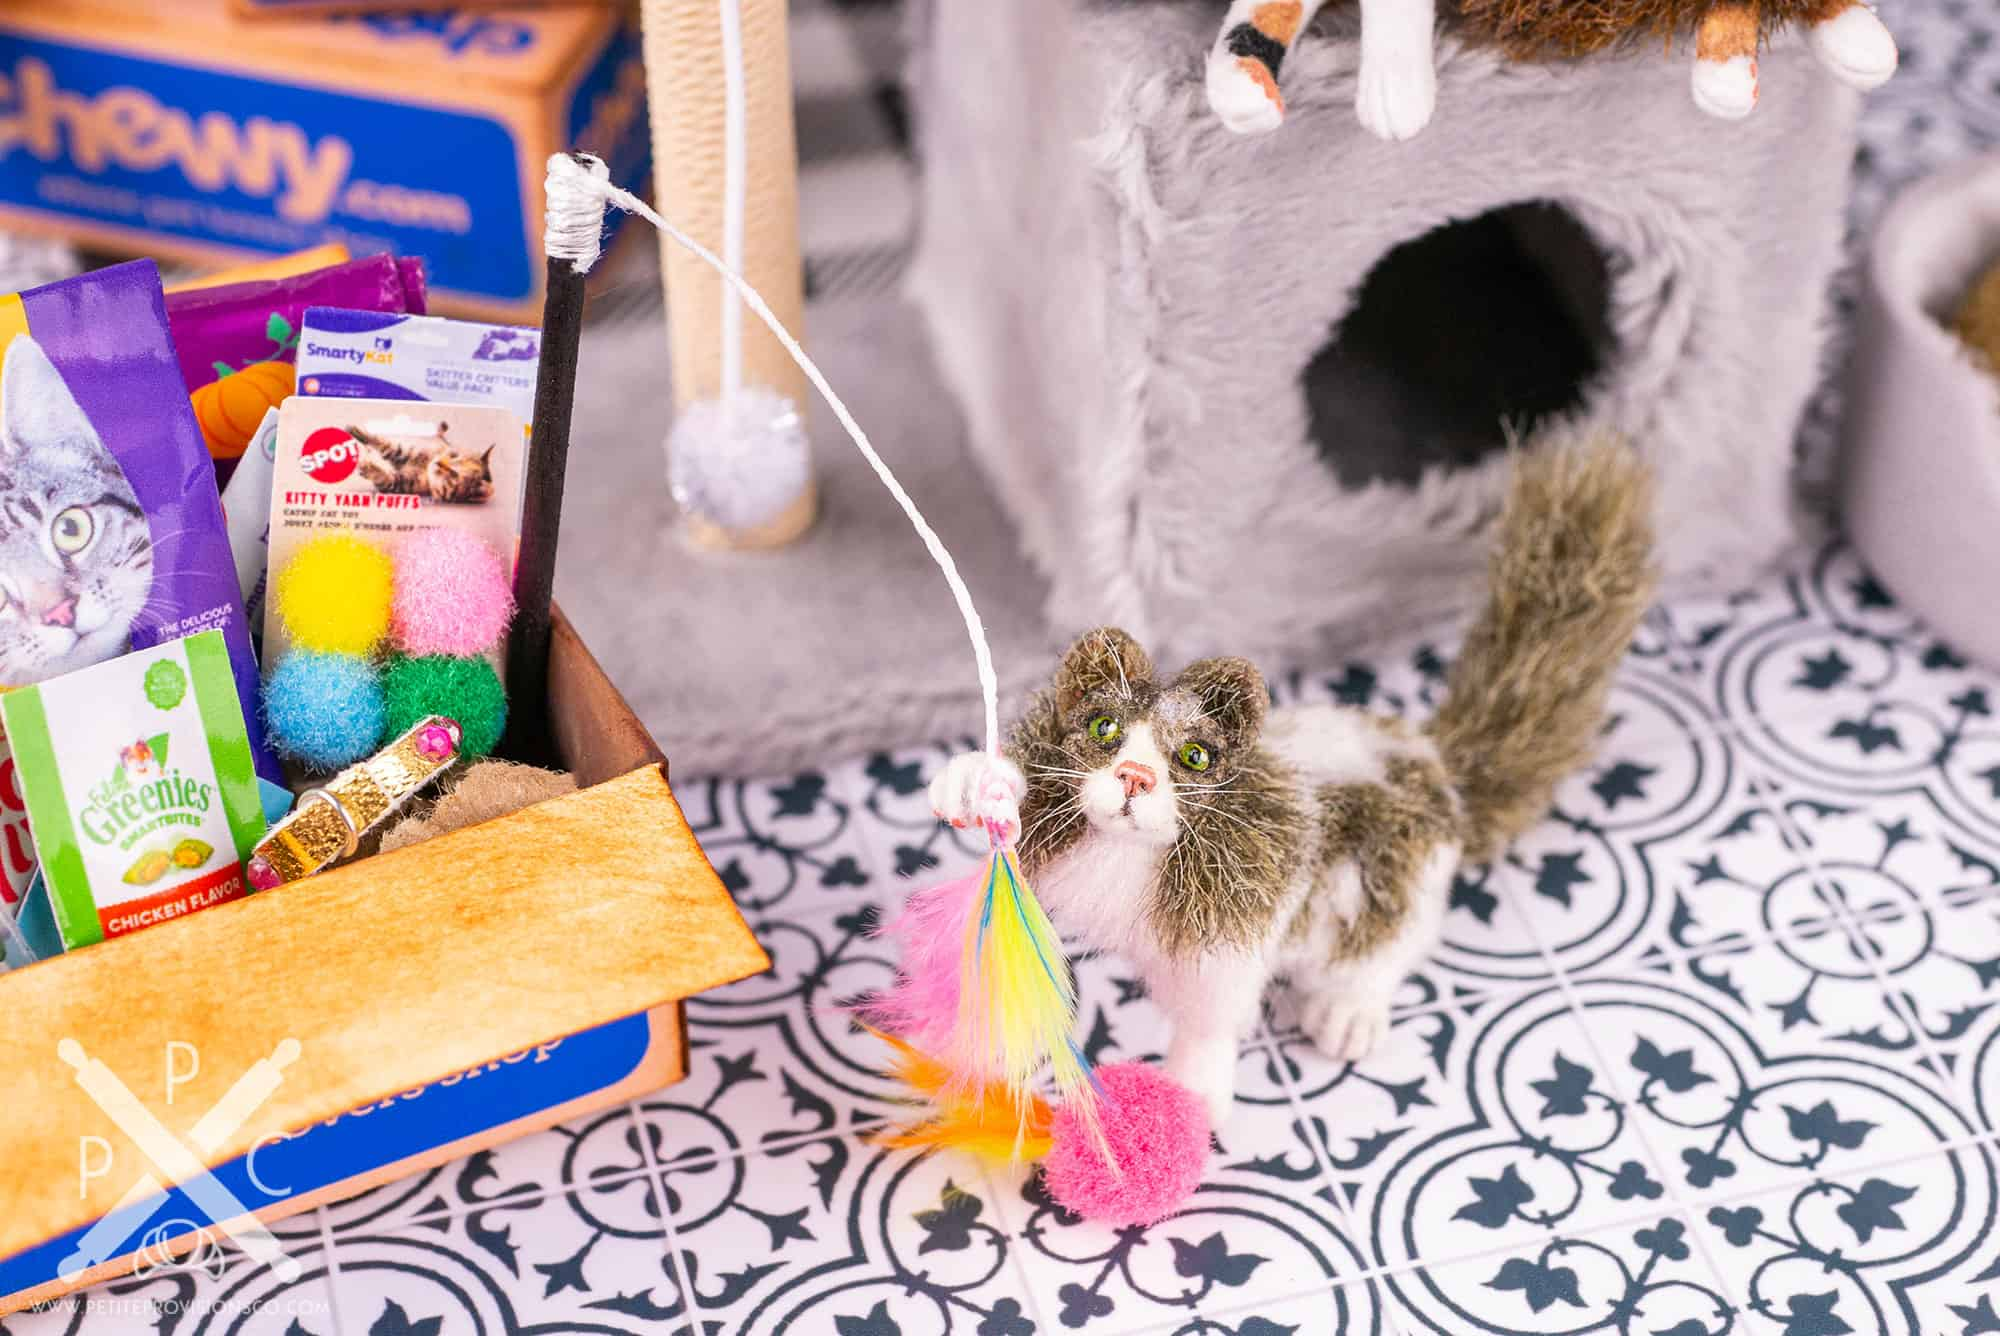 1/12 scale cat playing with a feather cat toy in a dollhouse miniature scene by Erika Pitera, The Petite Provisions Co.